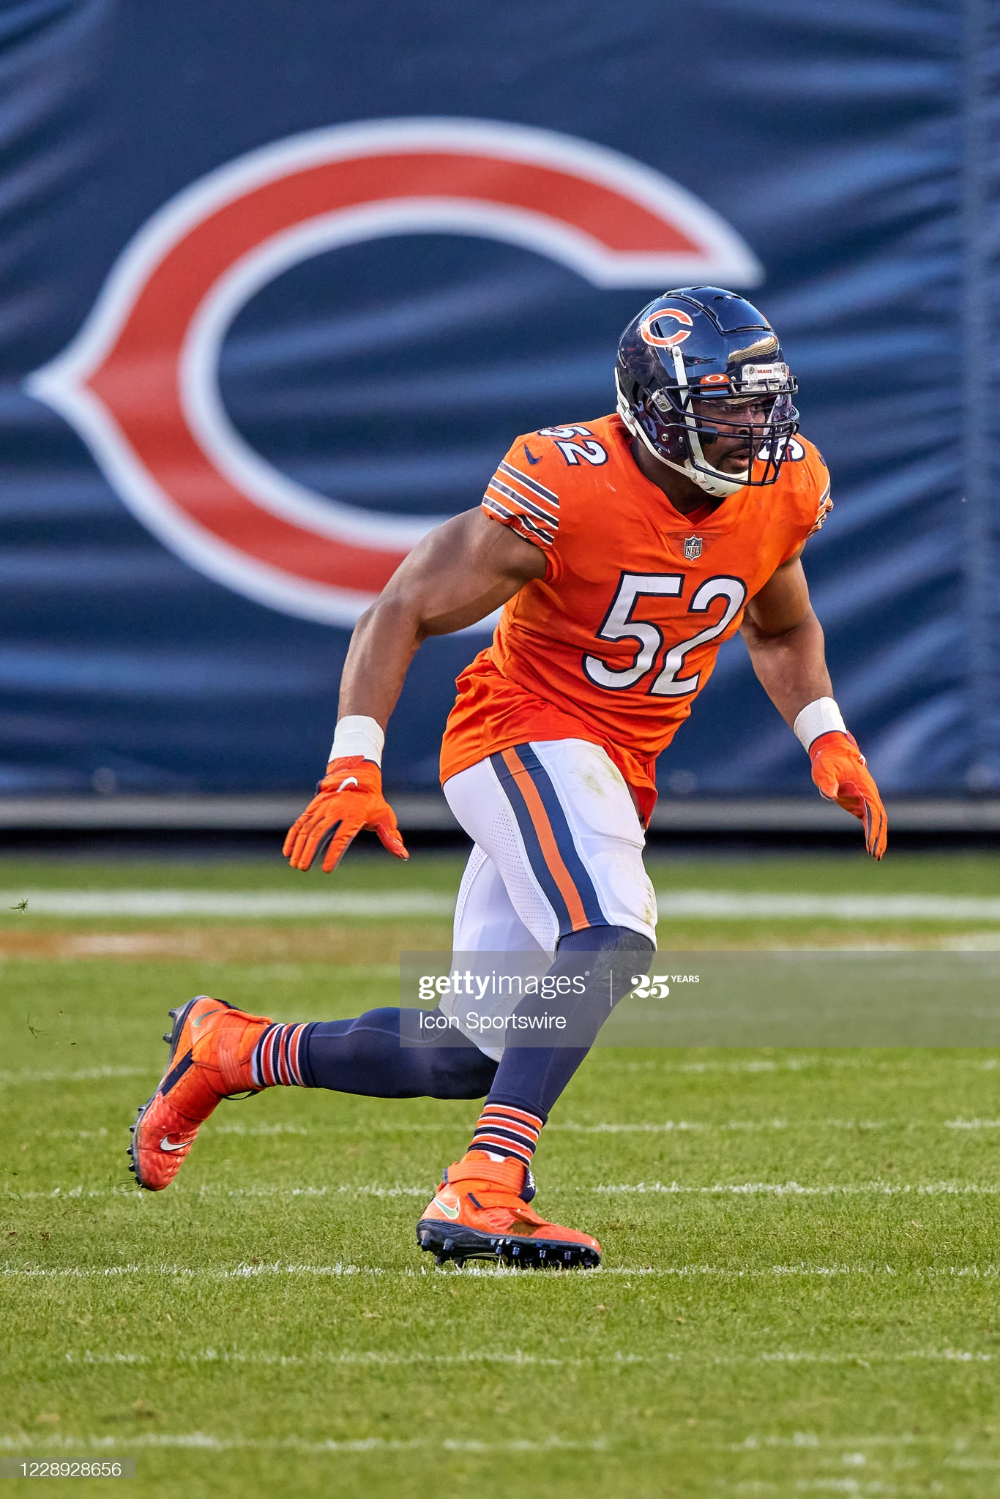 Chicago Bears Linebacker Khalil Mack In Game Action During A Nfl Game Chicago Bears Chicago Bears Football Chicago Bears Pictures